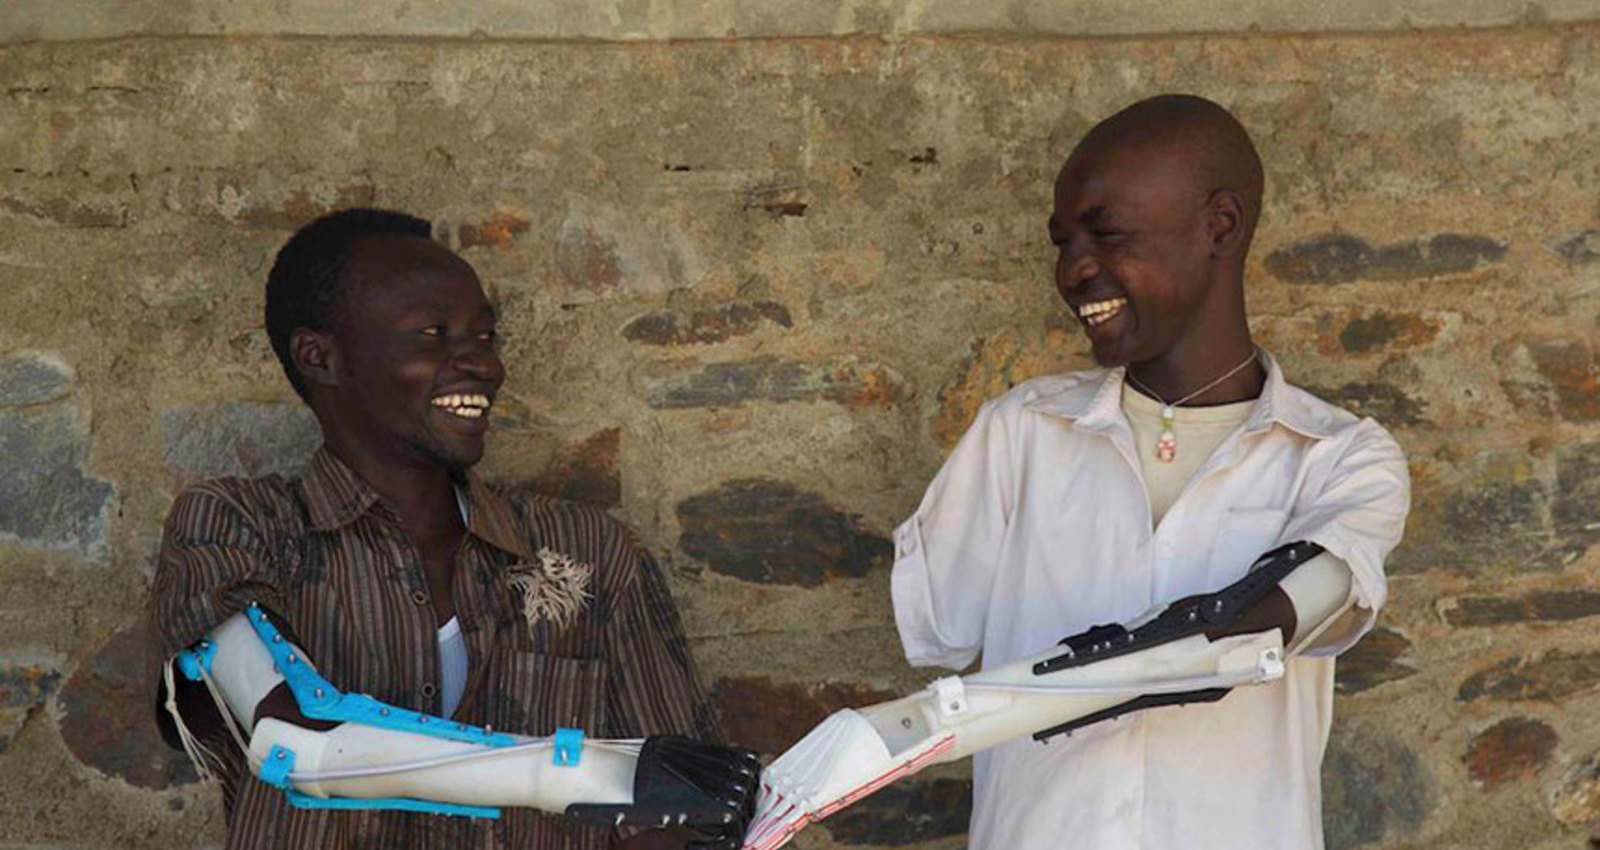 Project Daniel: 3Dprinting prosthetic arms for children of war-torn Sudan